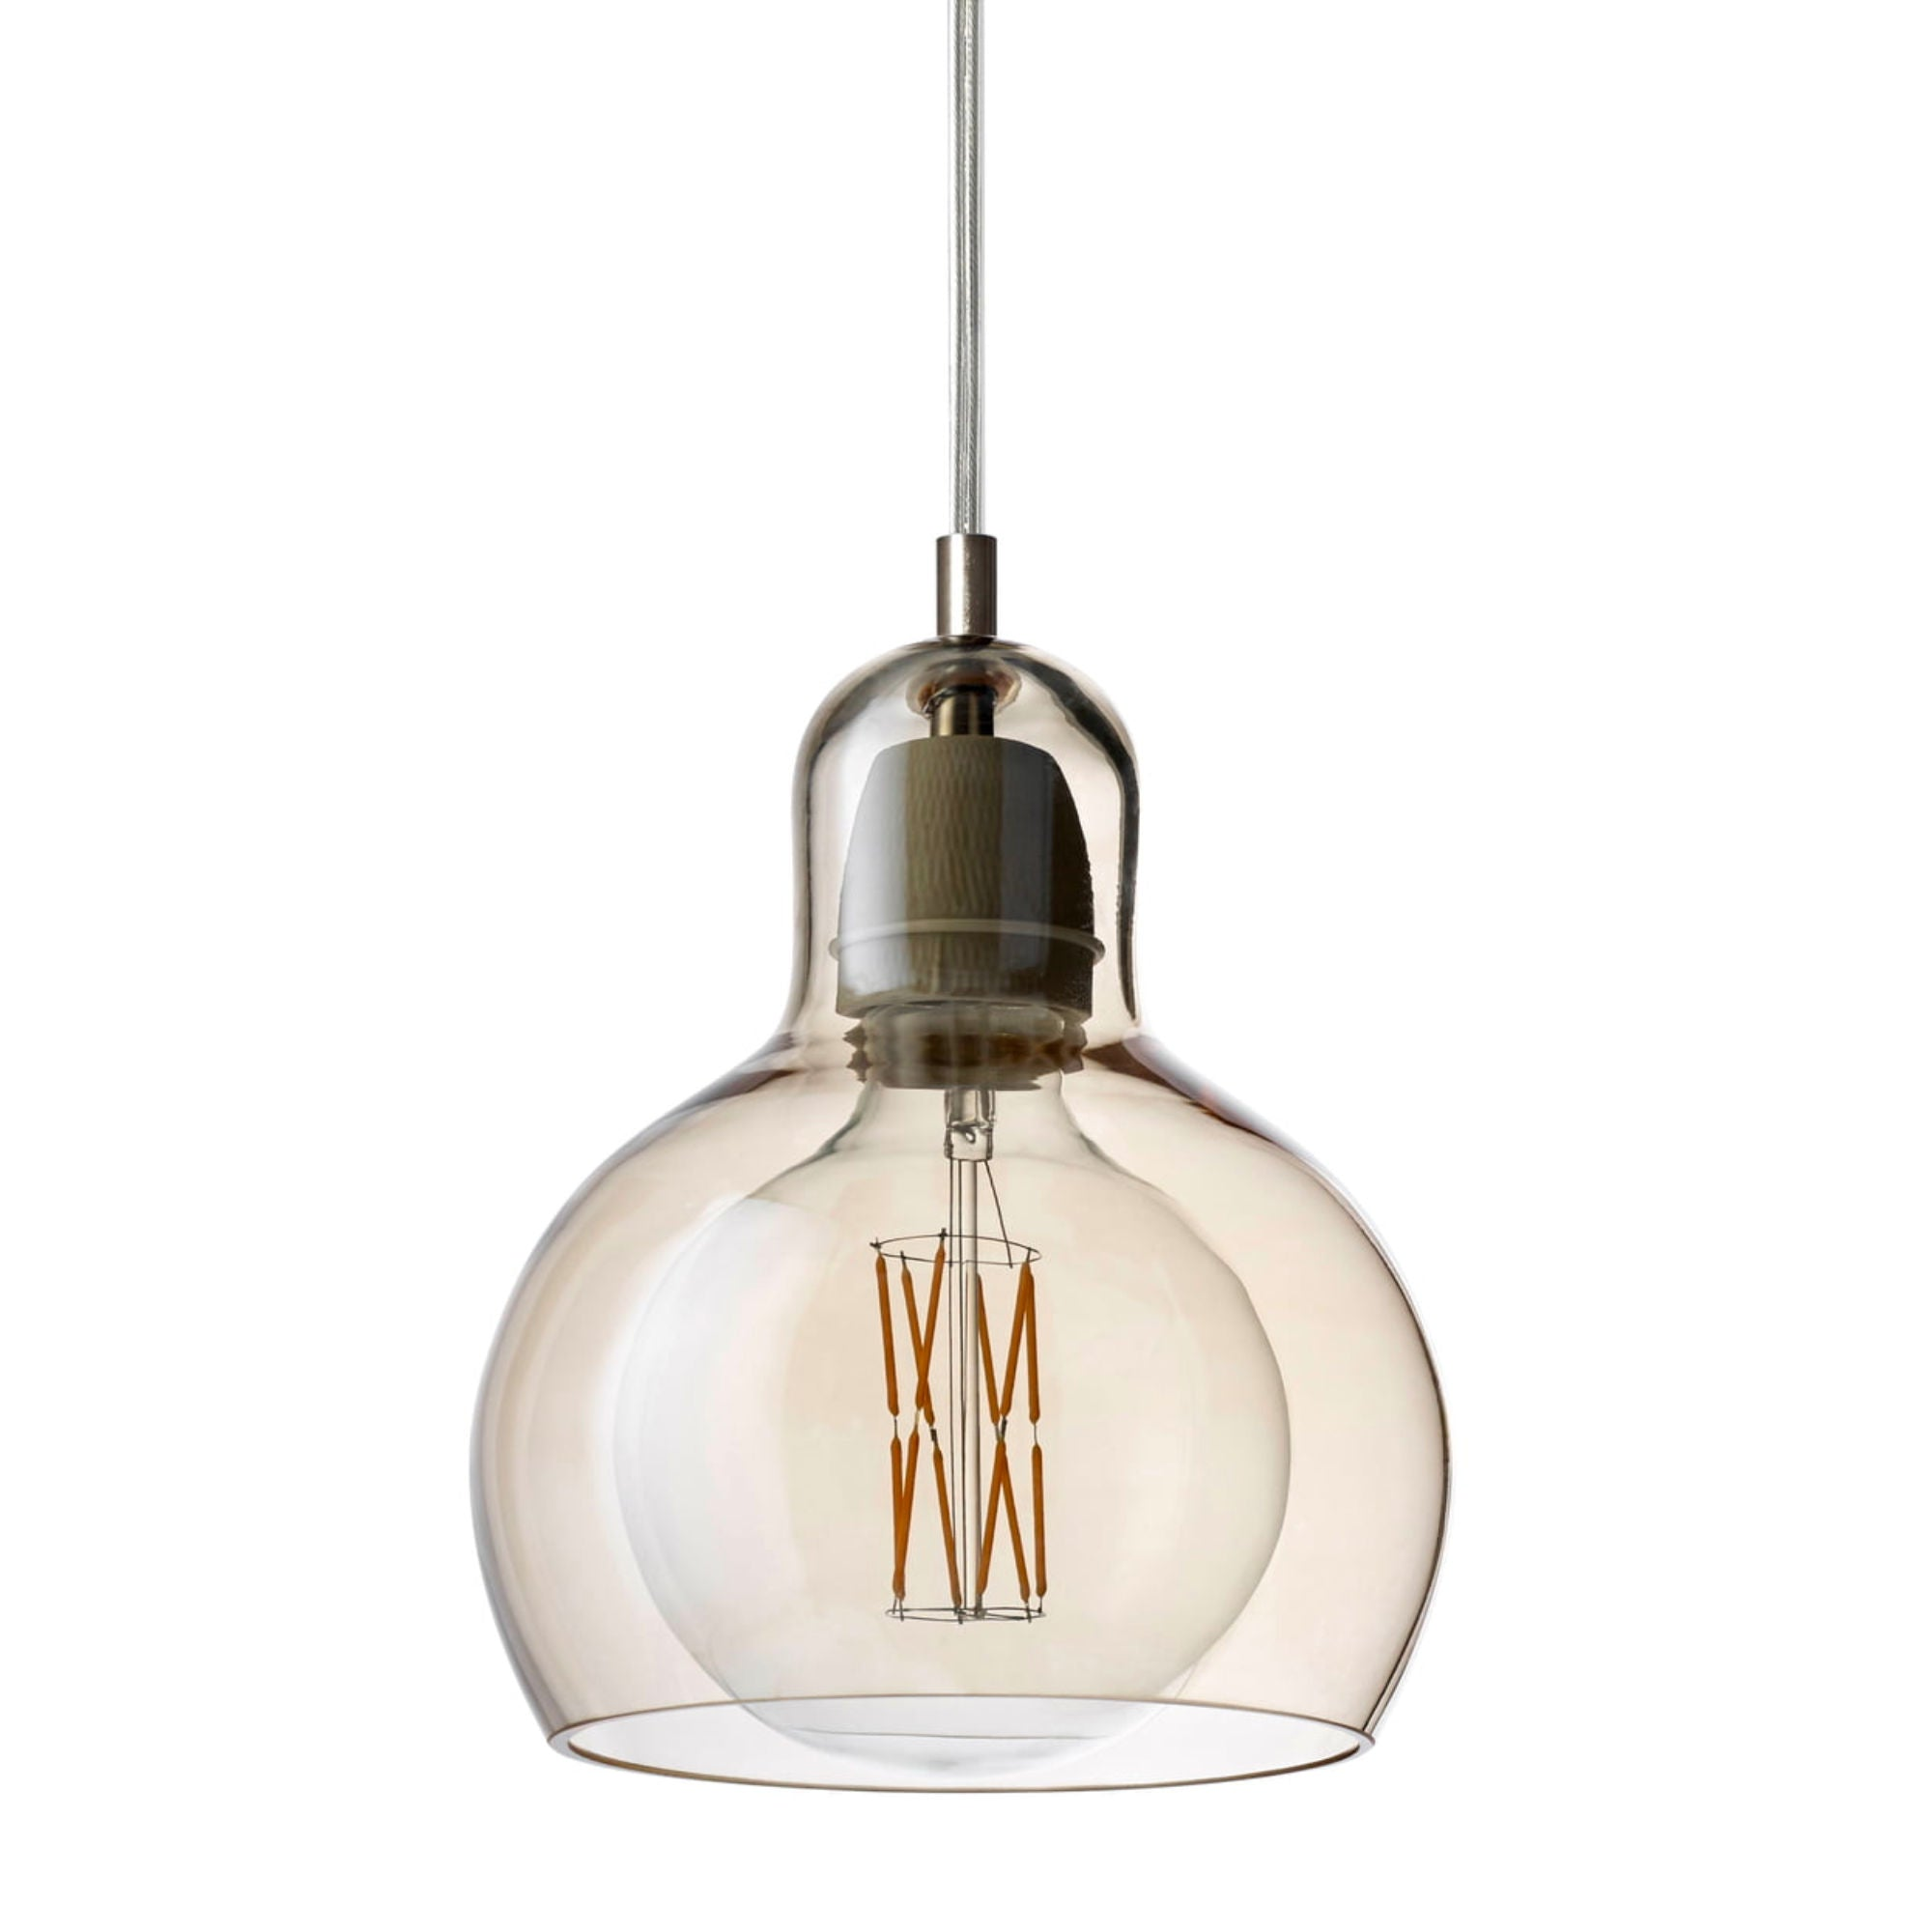 &Tradition SR2 Mega Bulb , gold - pvc cord